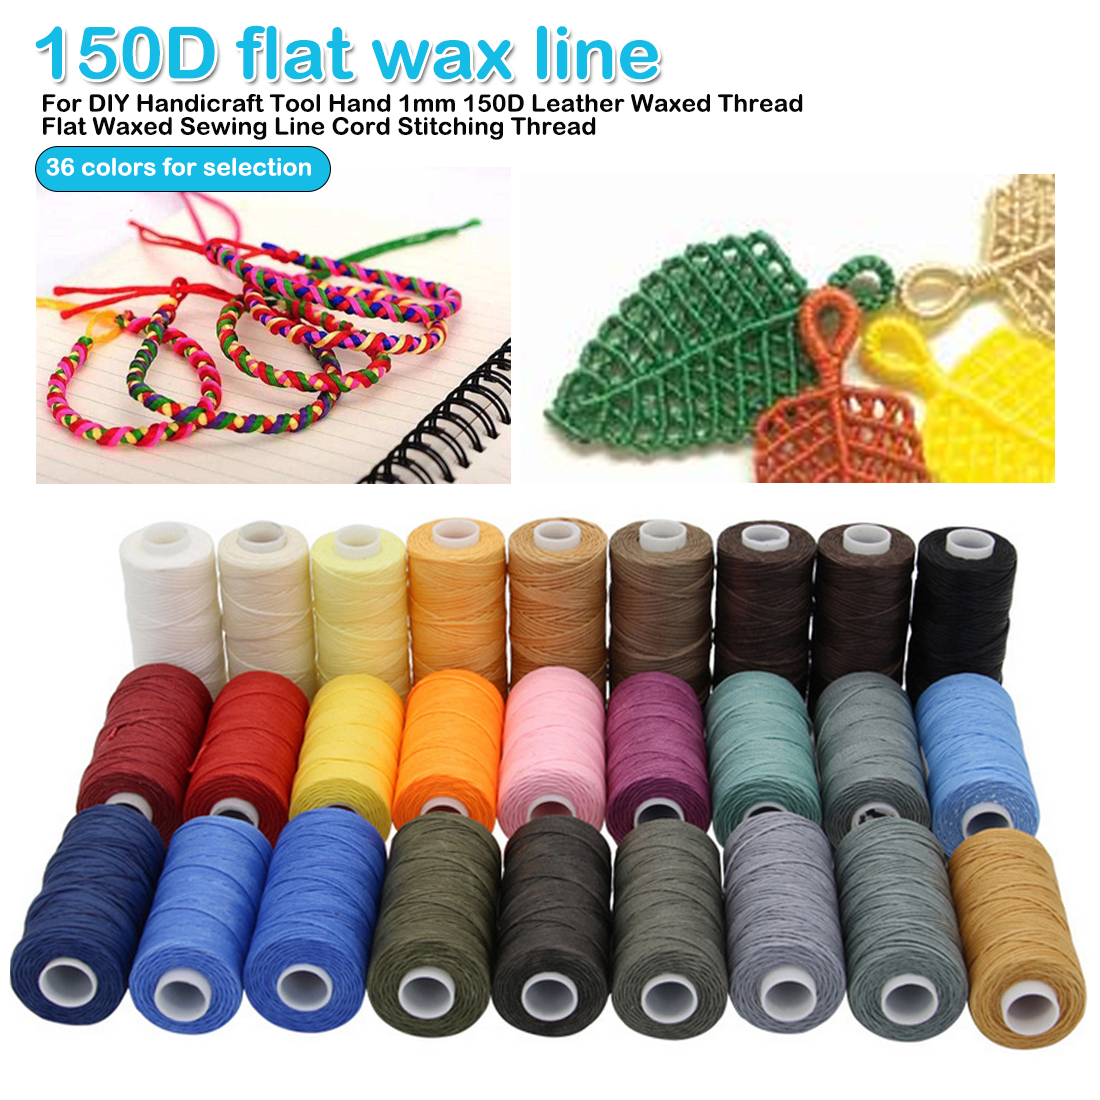 400M 0.55mm Round Waxed Thread Cord Leather Sewing Hand Stitching Jewelry Craft